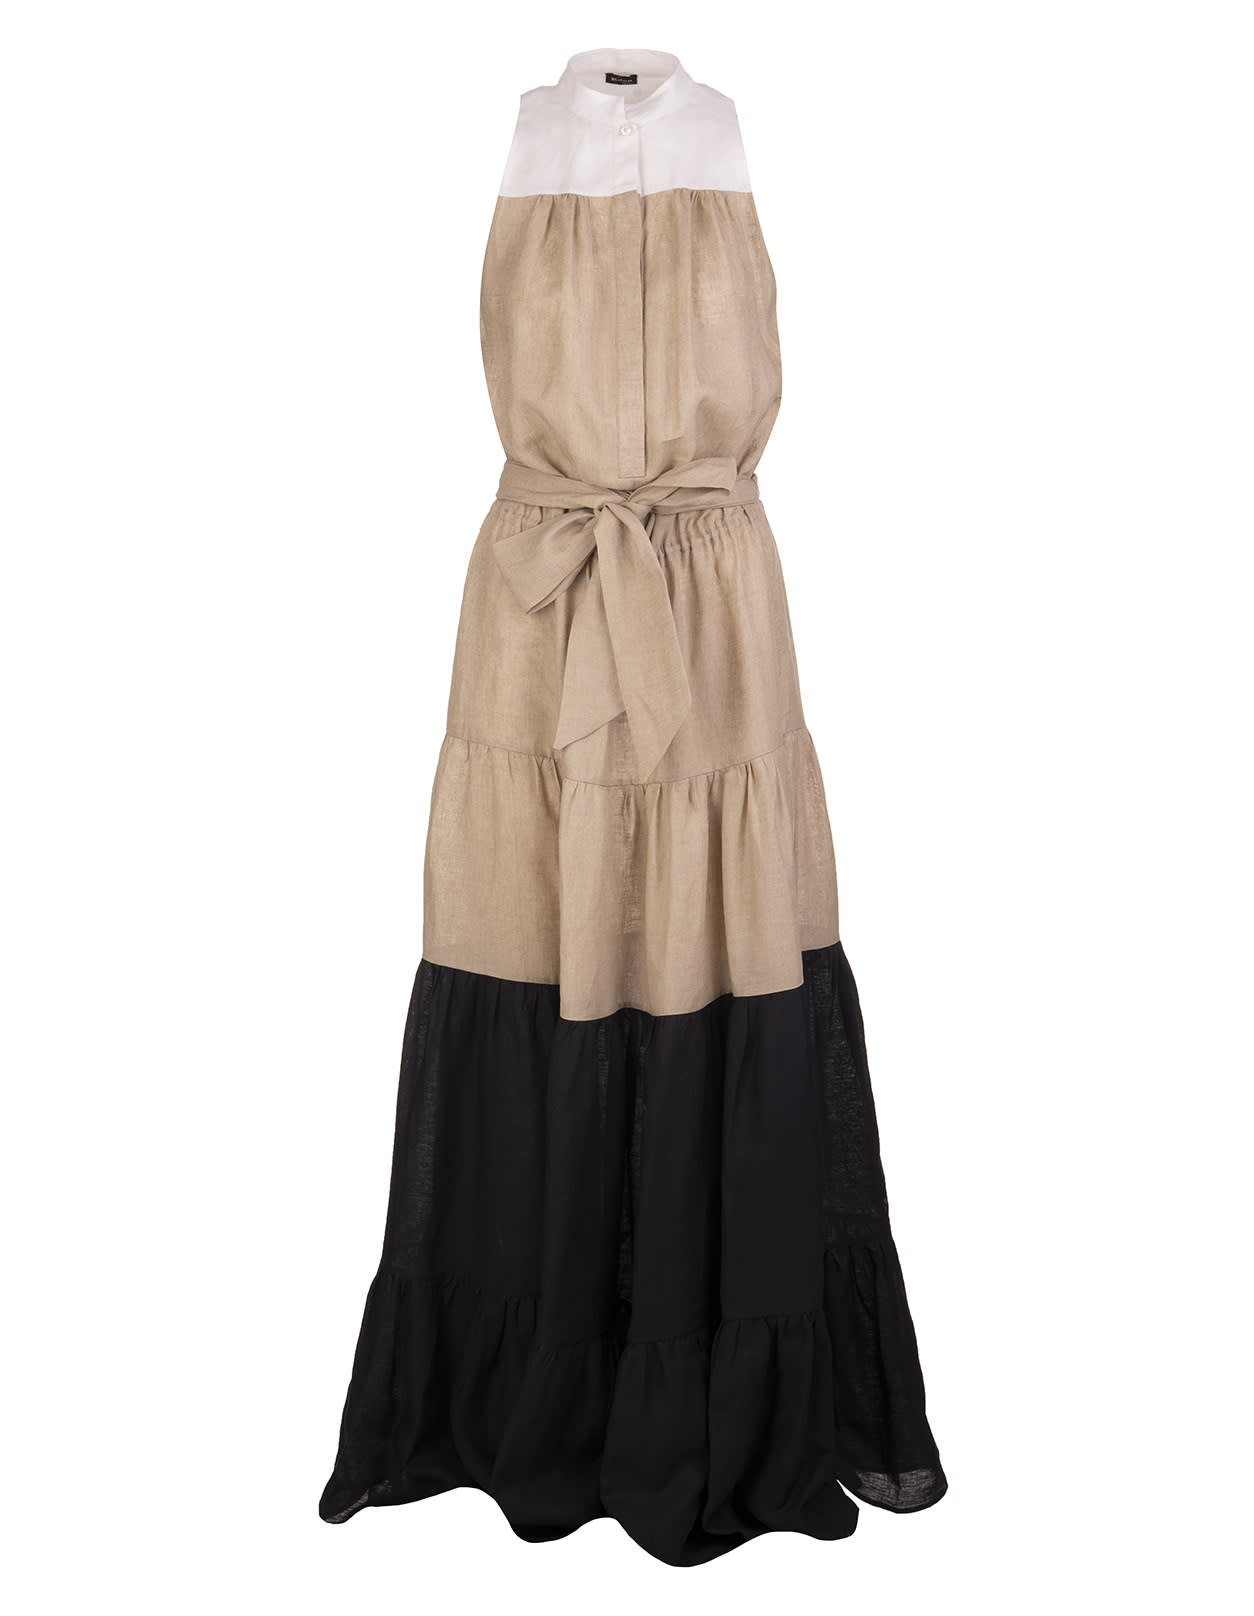 Buy White/beige/black Linen Sleeveless Tiered Maxi Dress online, shop Kiton with free shipping